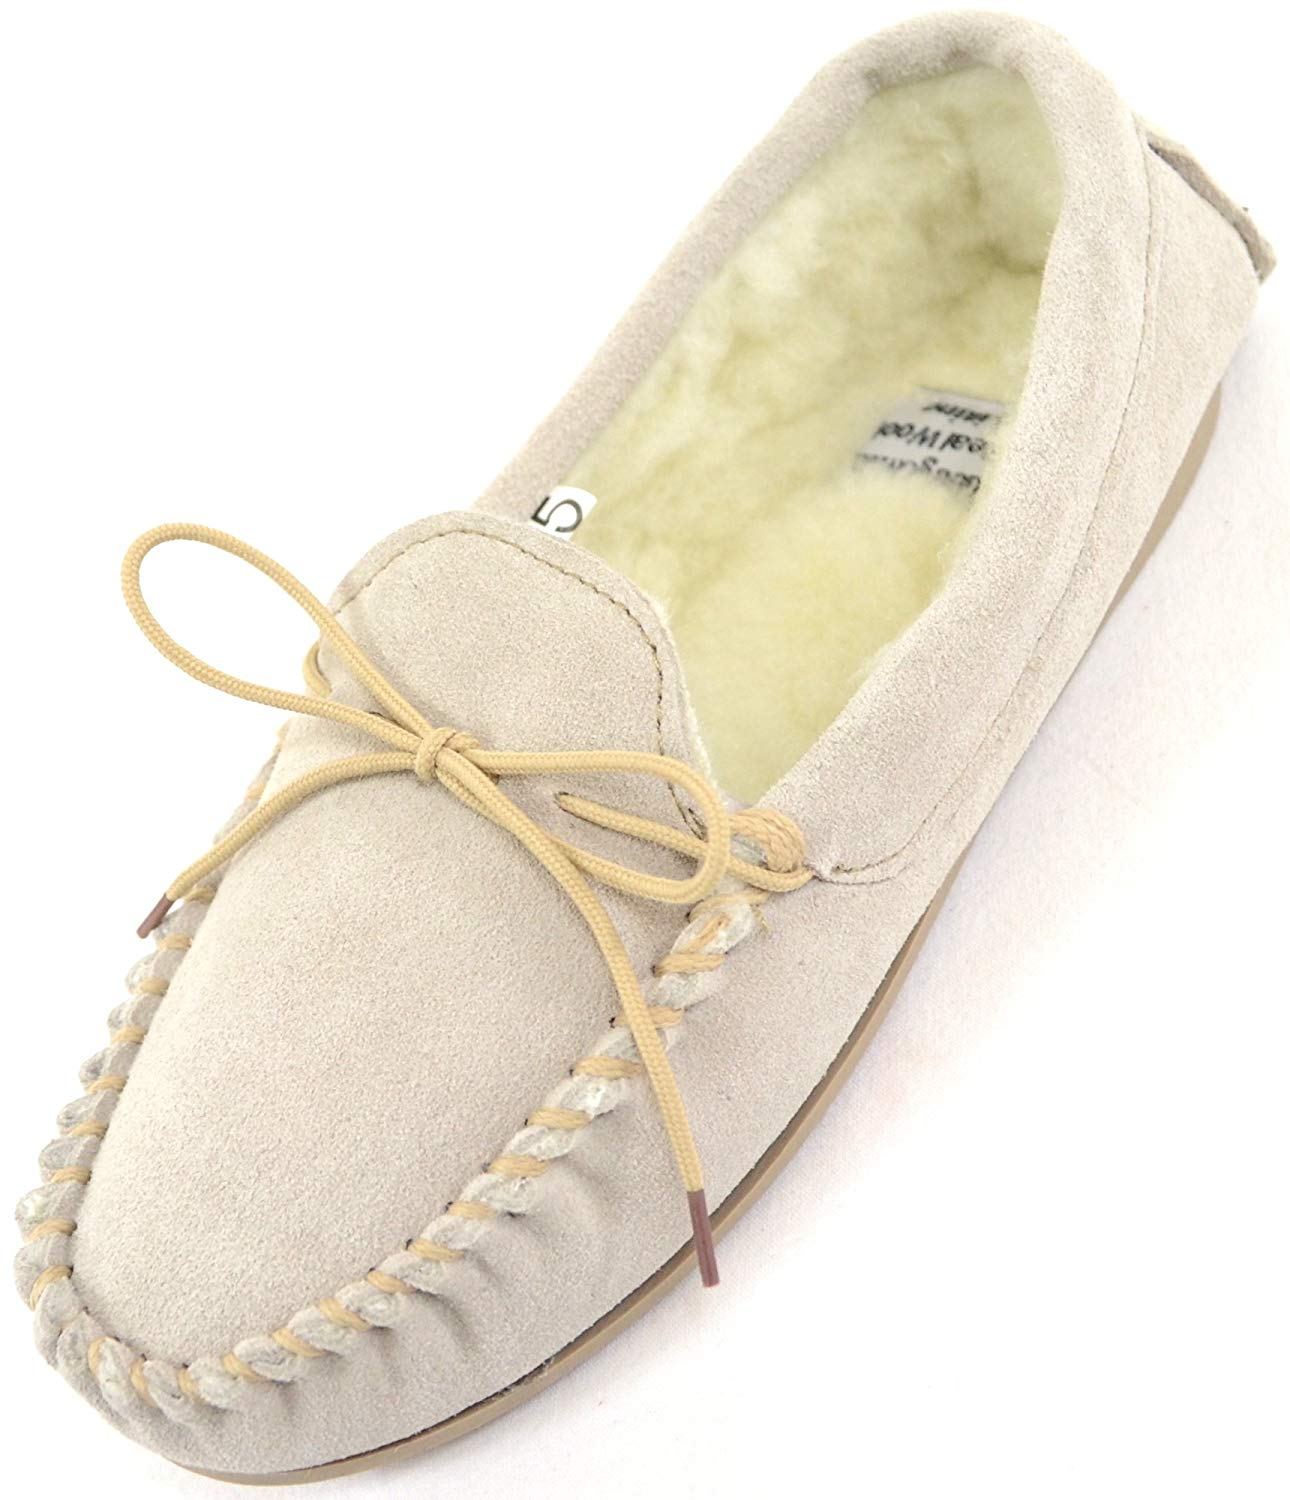 975b2b331ef Get Quotations · SNUGRUGS Ladies Womens Genuine Suede Leather Moccasin  Slippers With Warm Wool Lining